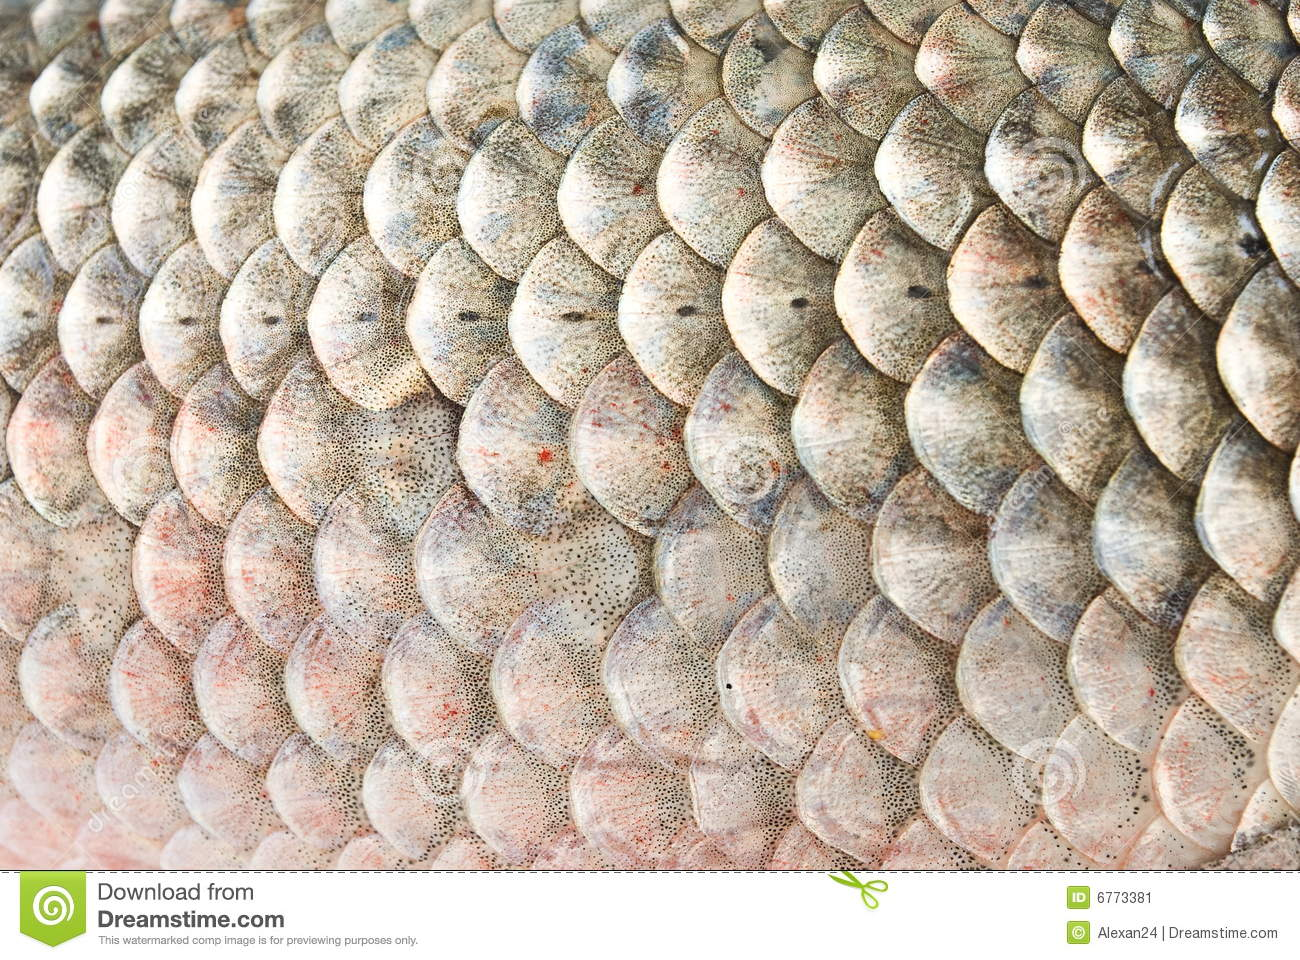 Fish scales stock image image 6773381 for Mlf fishing scale